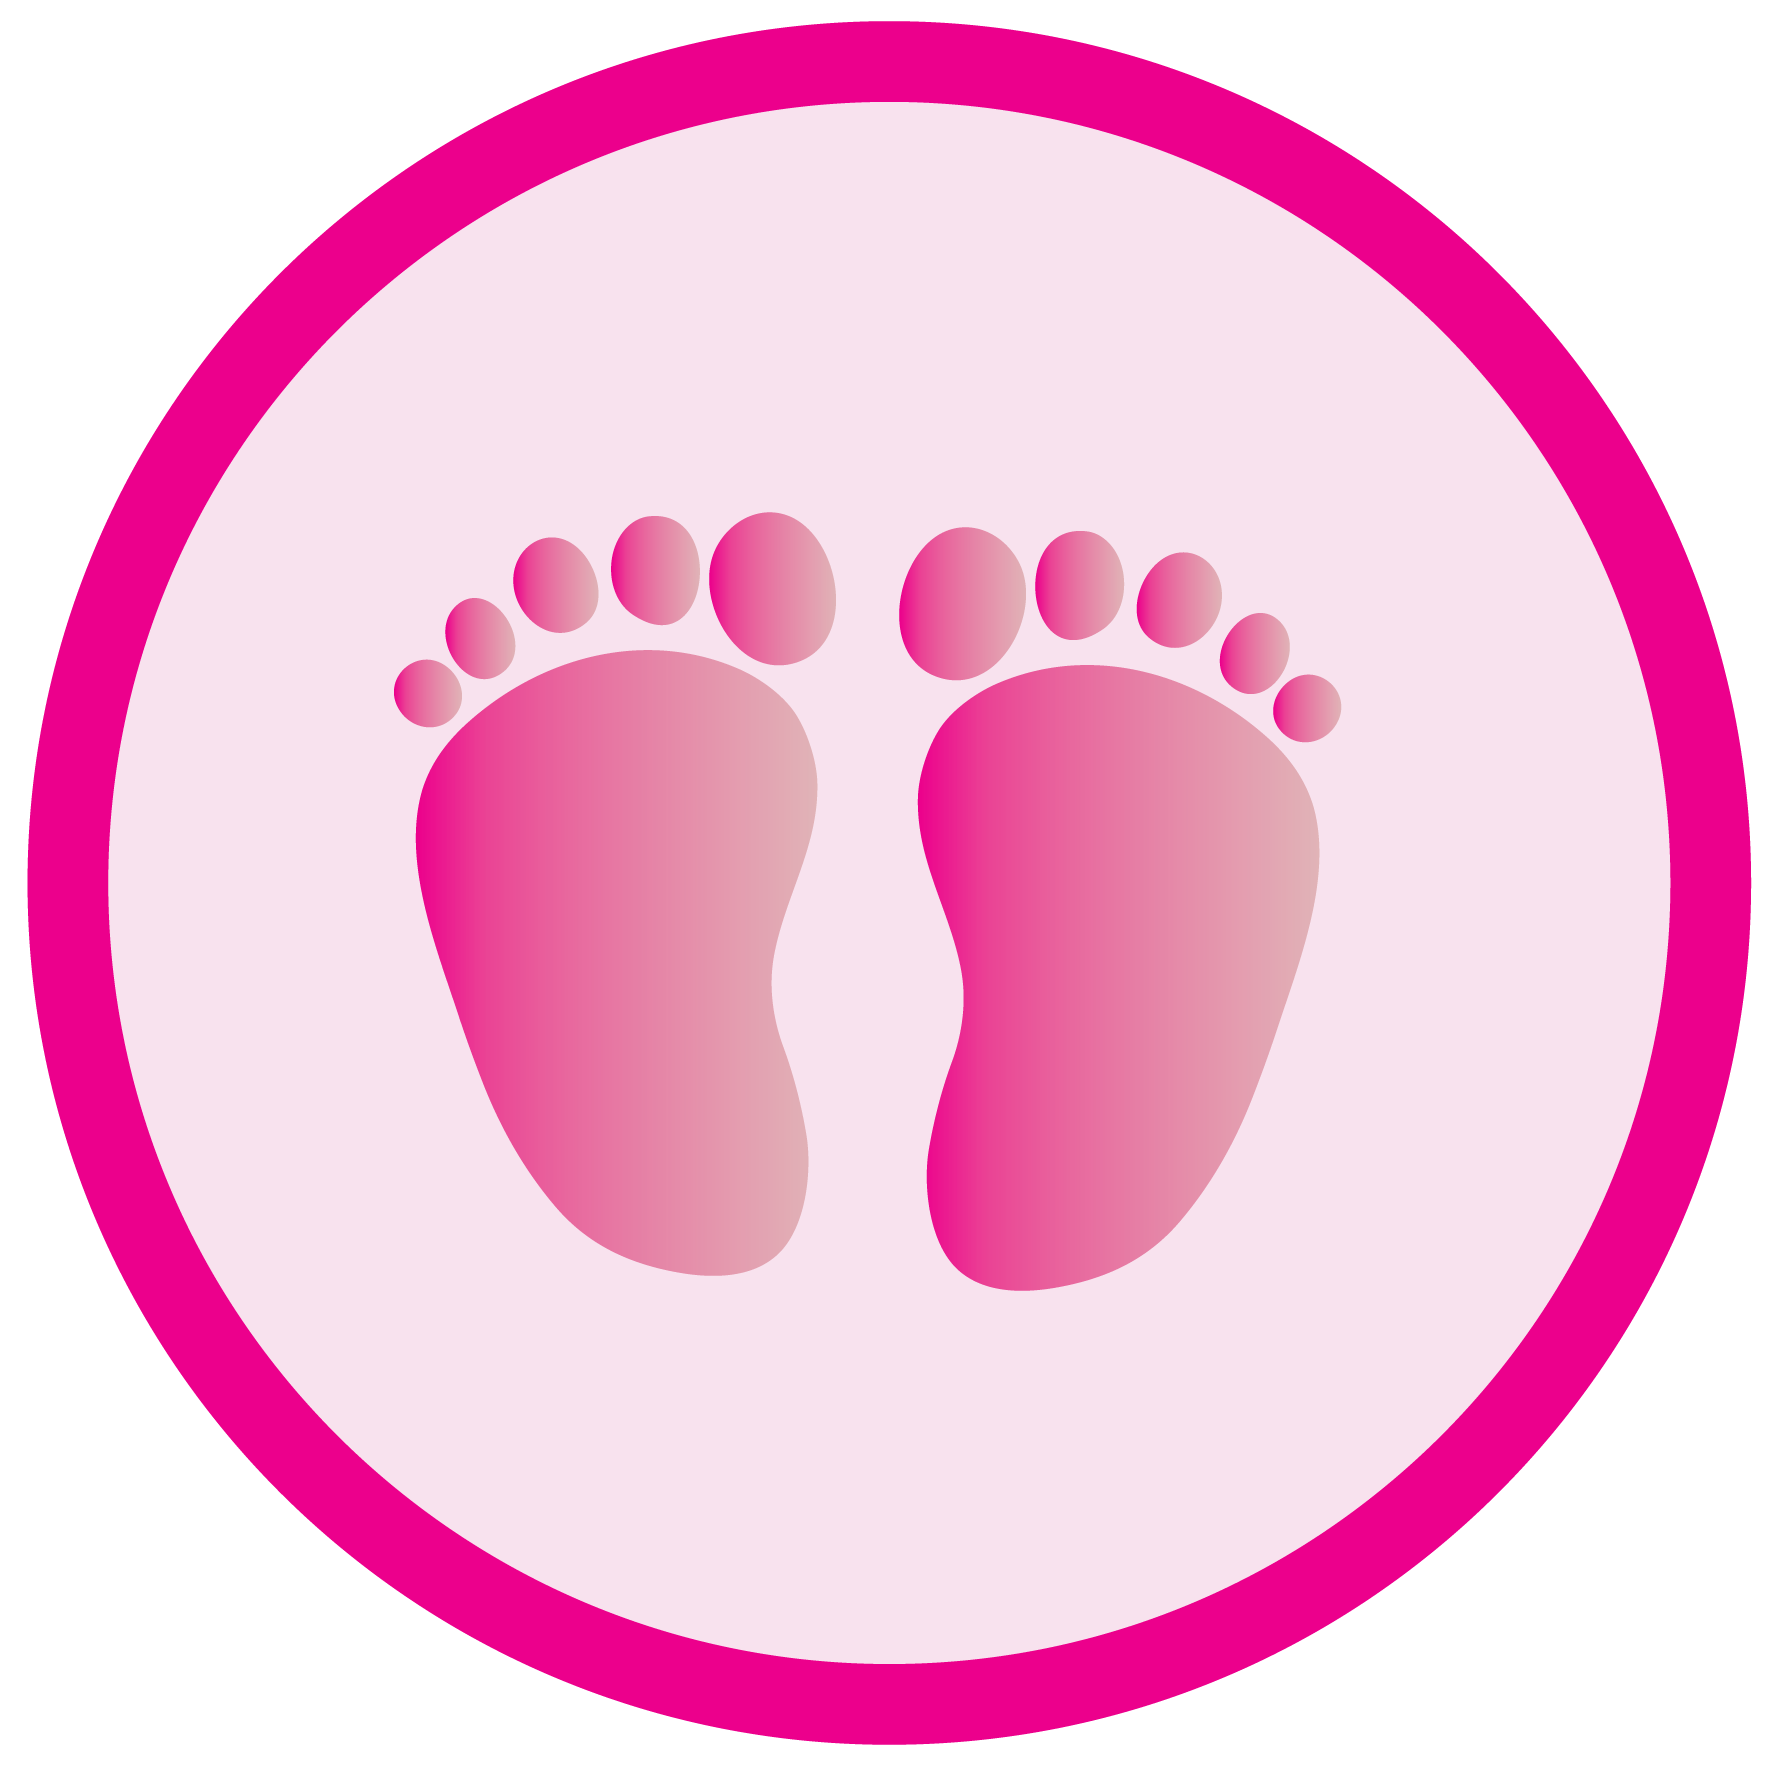 Footsteps clipart small. Baby feet clip art